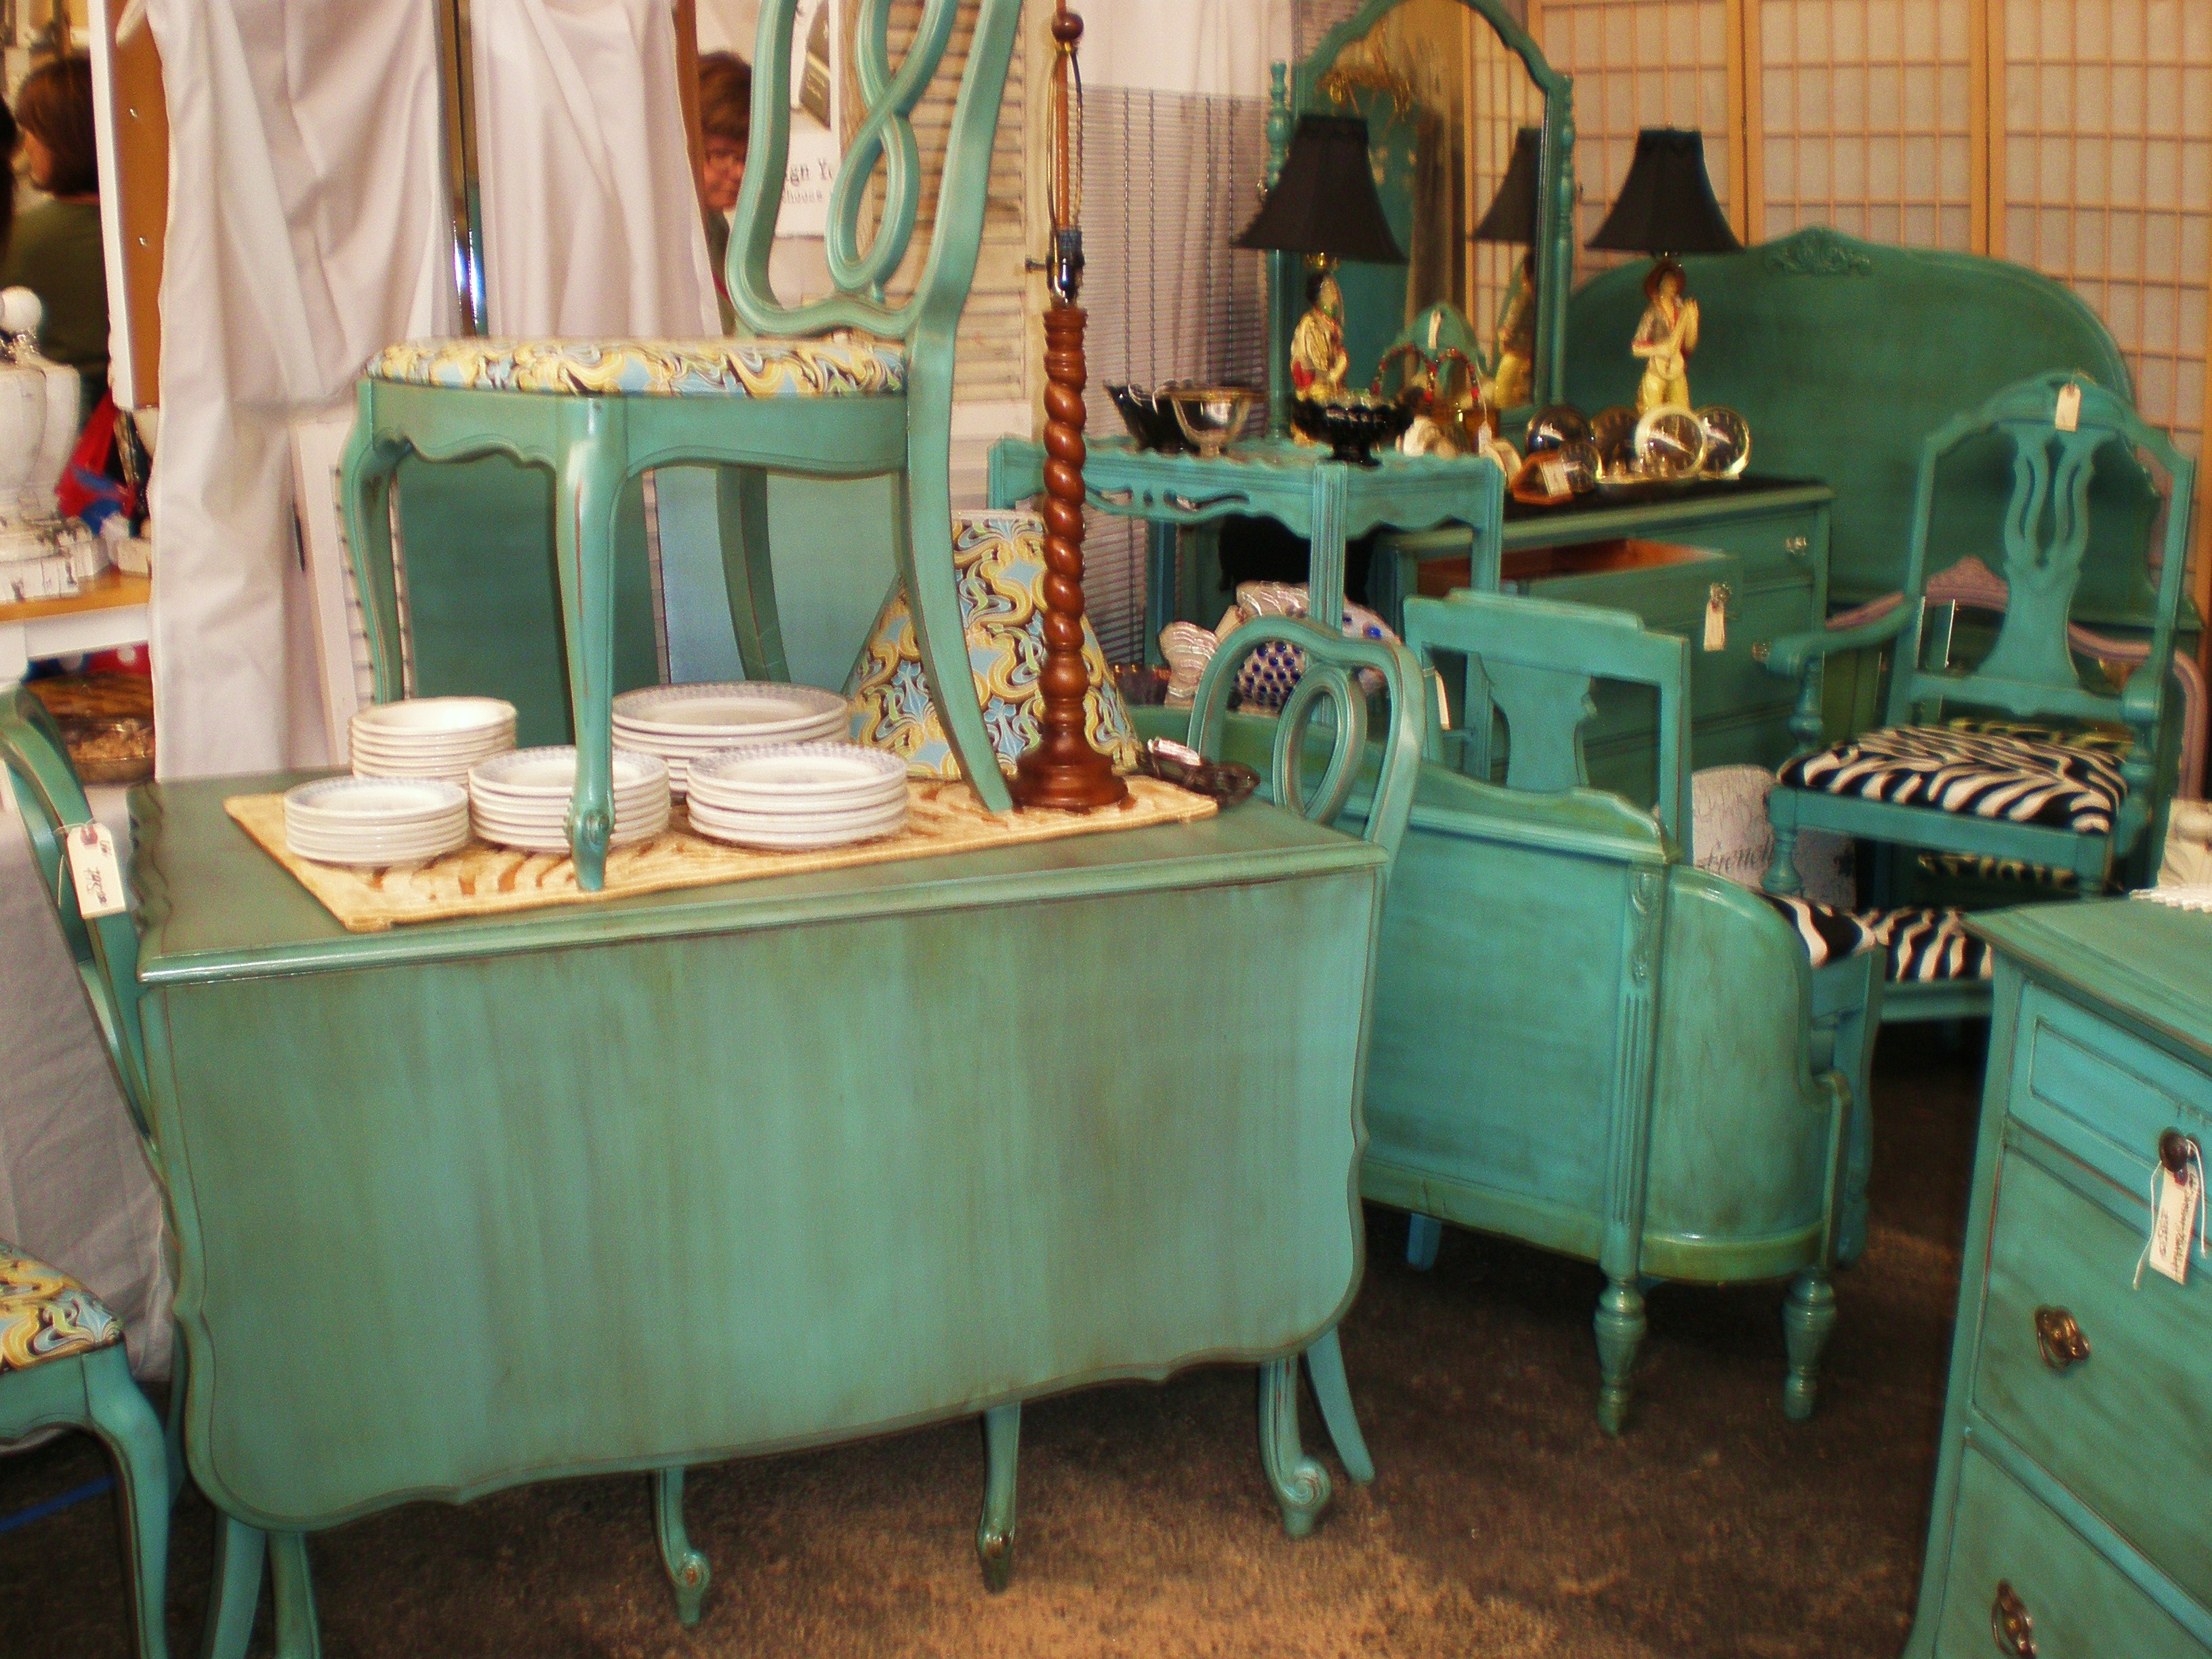 Perfect Turquoise Painted Furniture Ideas 3264 x 2448 · 1960 kB · jpeg